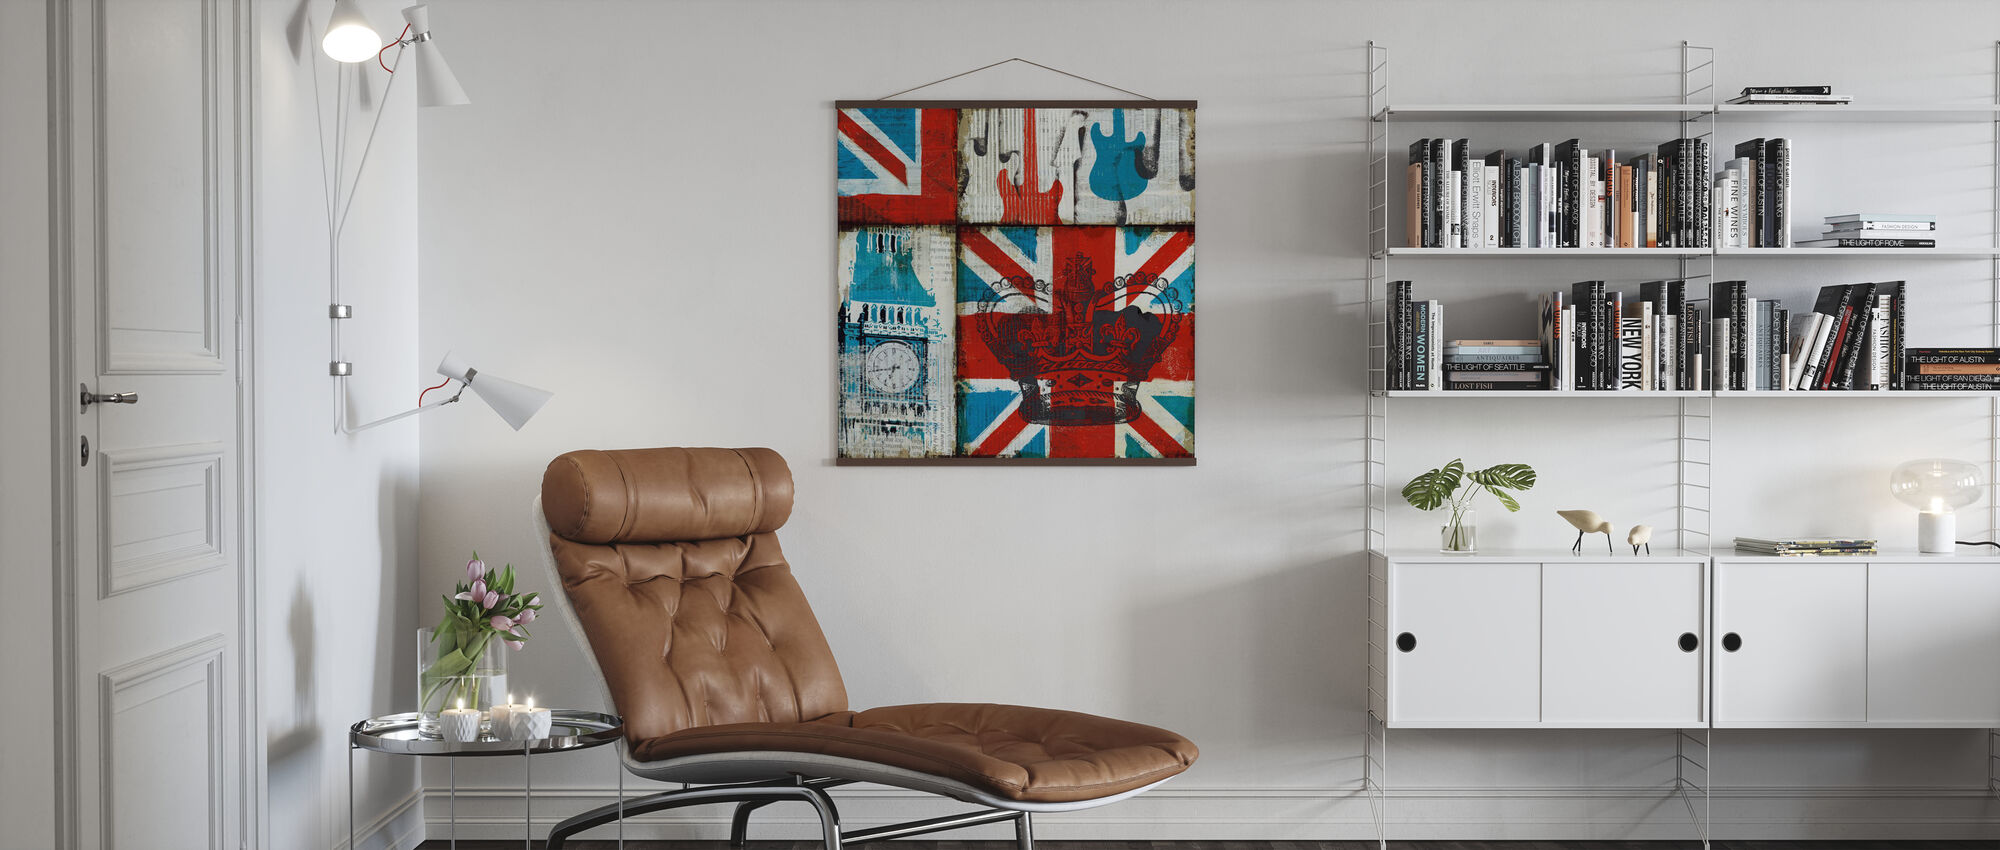 British Rock I - Poster - Living Room